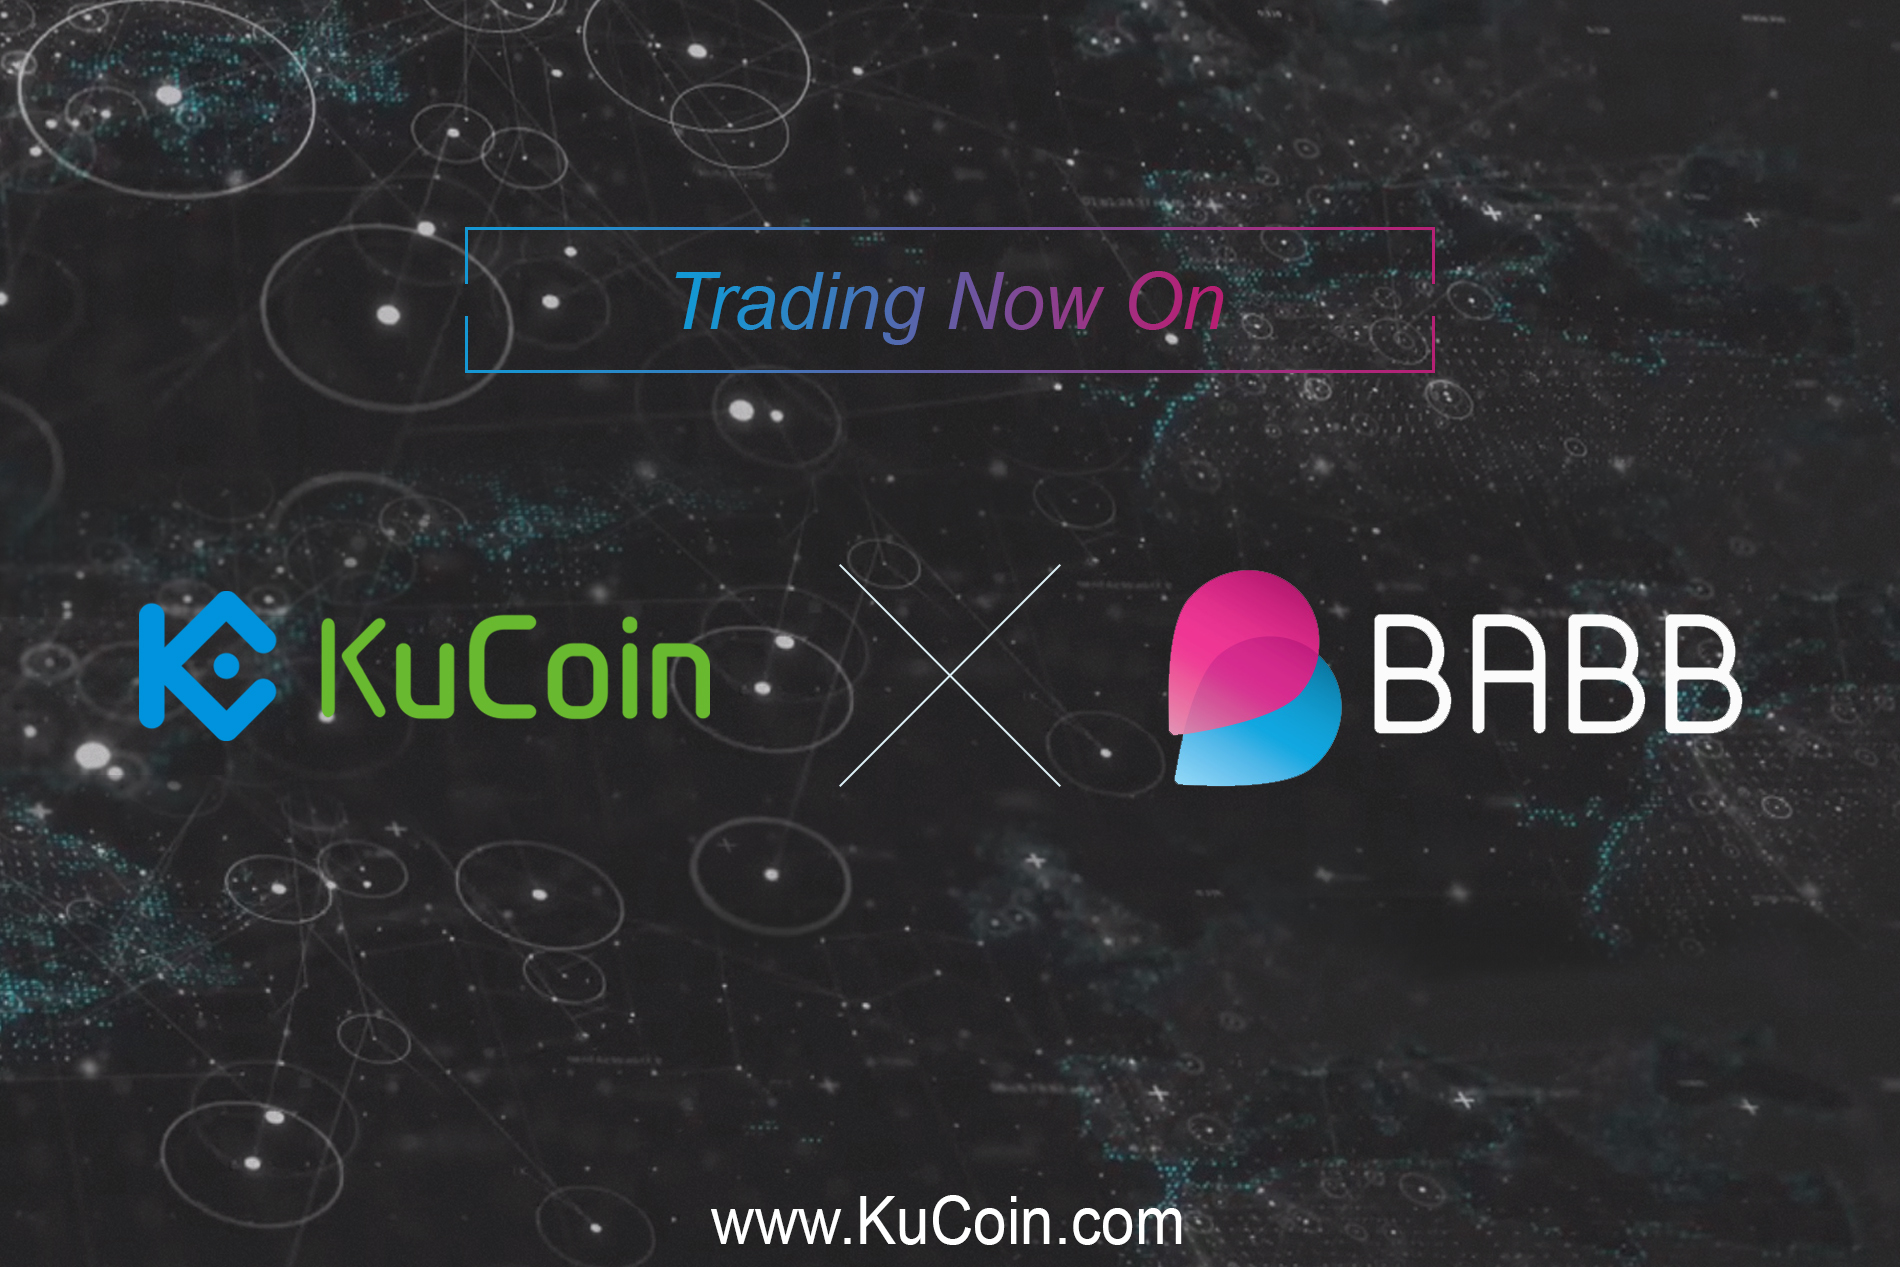 babb on kucoin